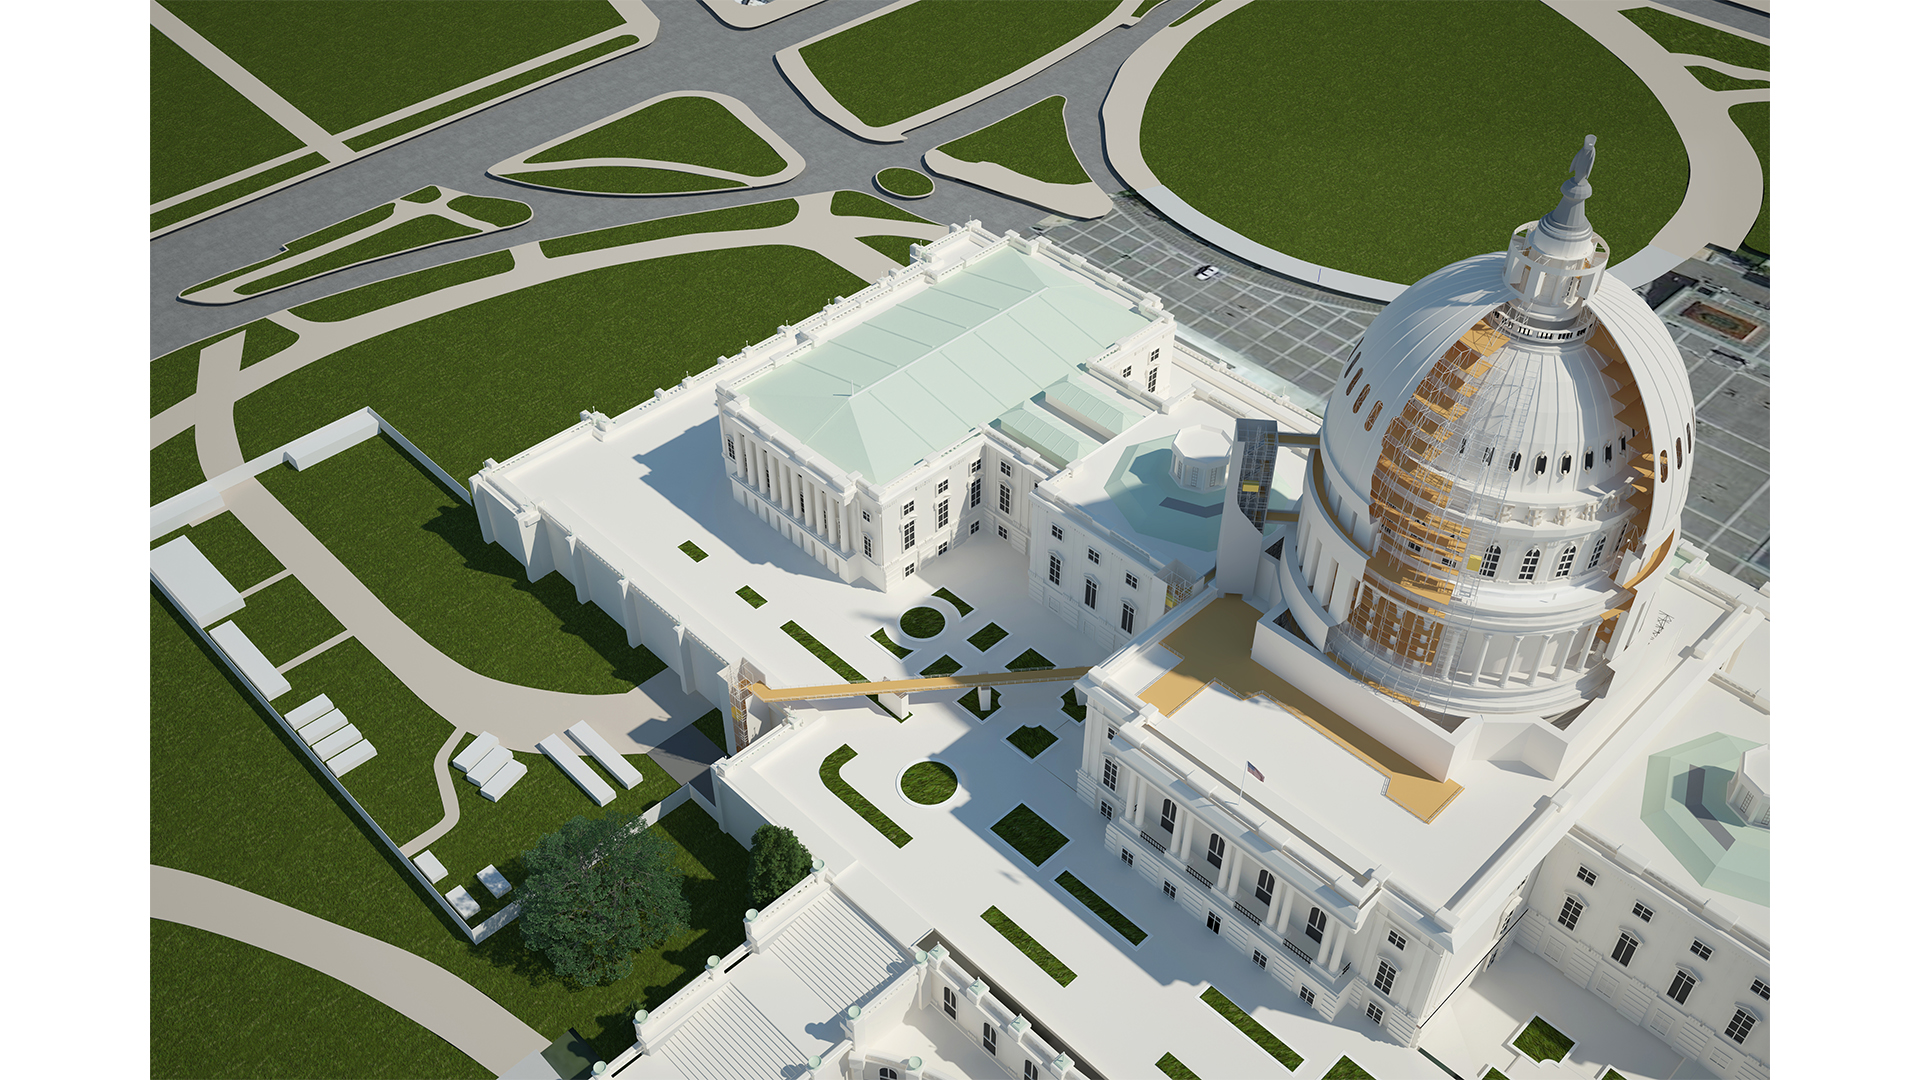 IMD_Rendering_Government_1183_US Capitol Dome Rehabilitation_Aerial View_Review_3_Pealed Away.jpg